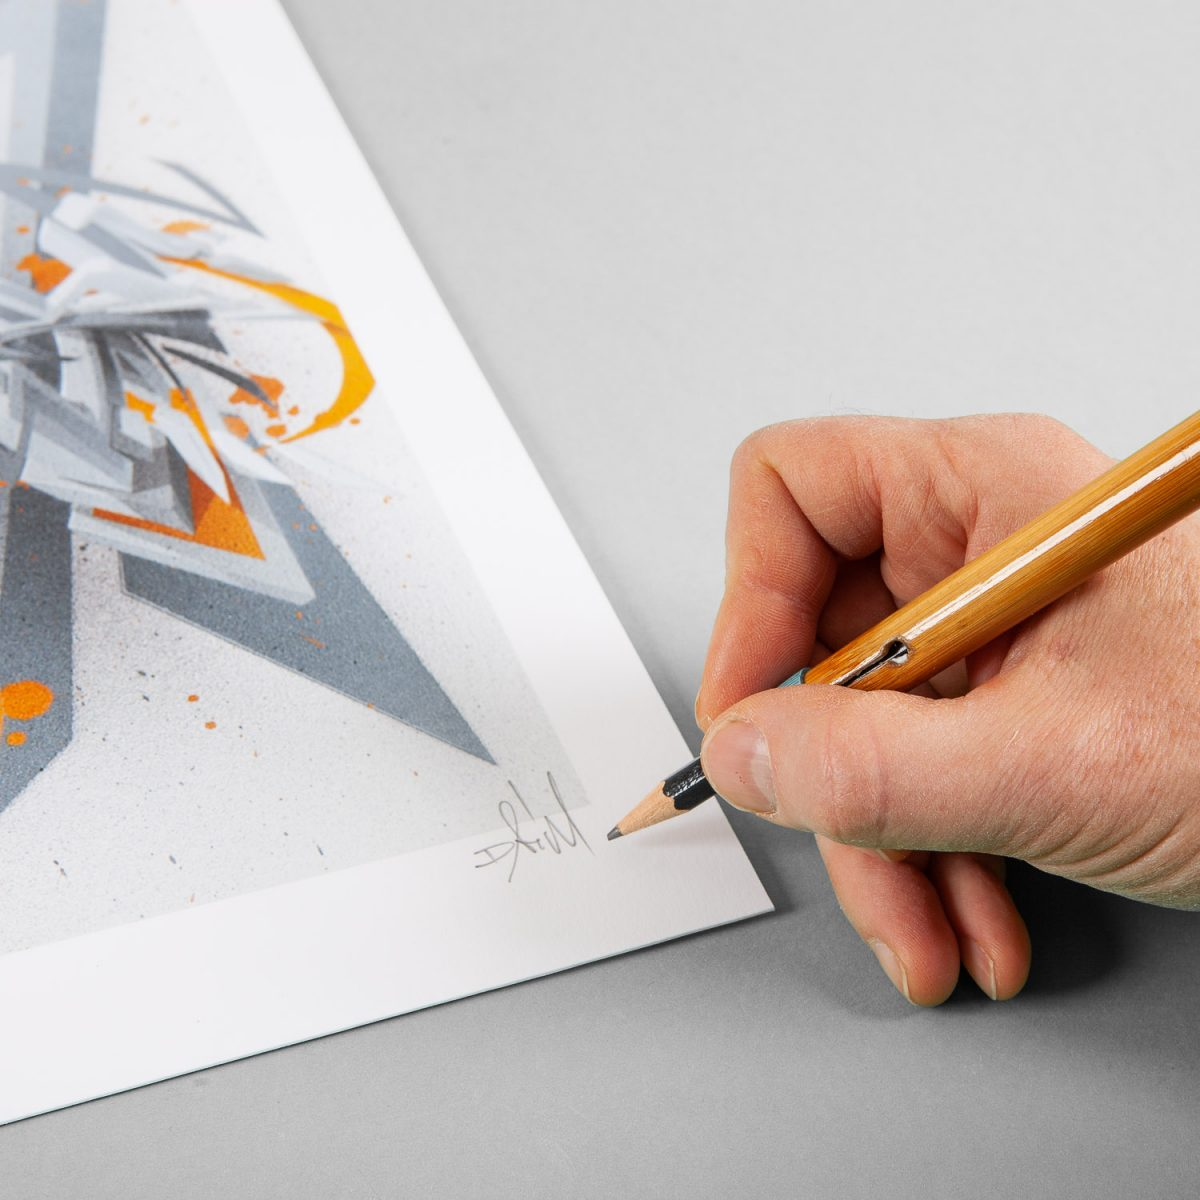 DAIM | ''DAIMaround -  Dynamic splash with orange'' | Giclée FineArt Print on 290 gsm Moab Rag Natural Paper | 40,64 x 30,48 cm / 16 x 12 inch | 2019 | Edition of 50 + 5 AP + 3 PP, handsigned, numbered and with Certificate of Authenticity of 1xRUN | © D